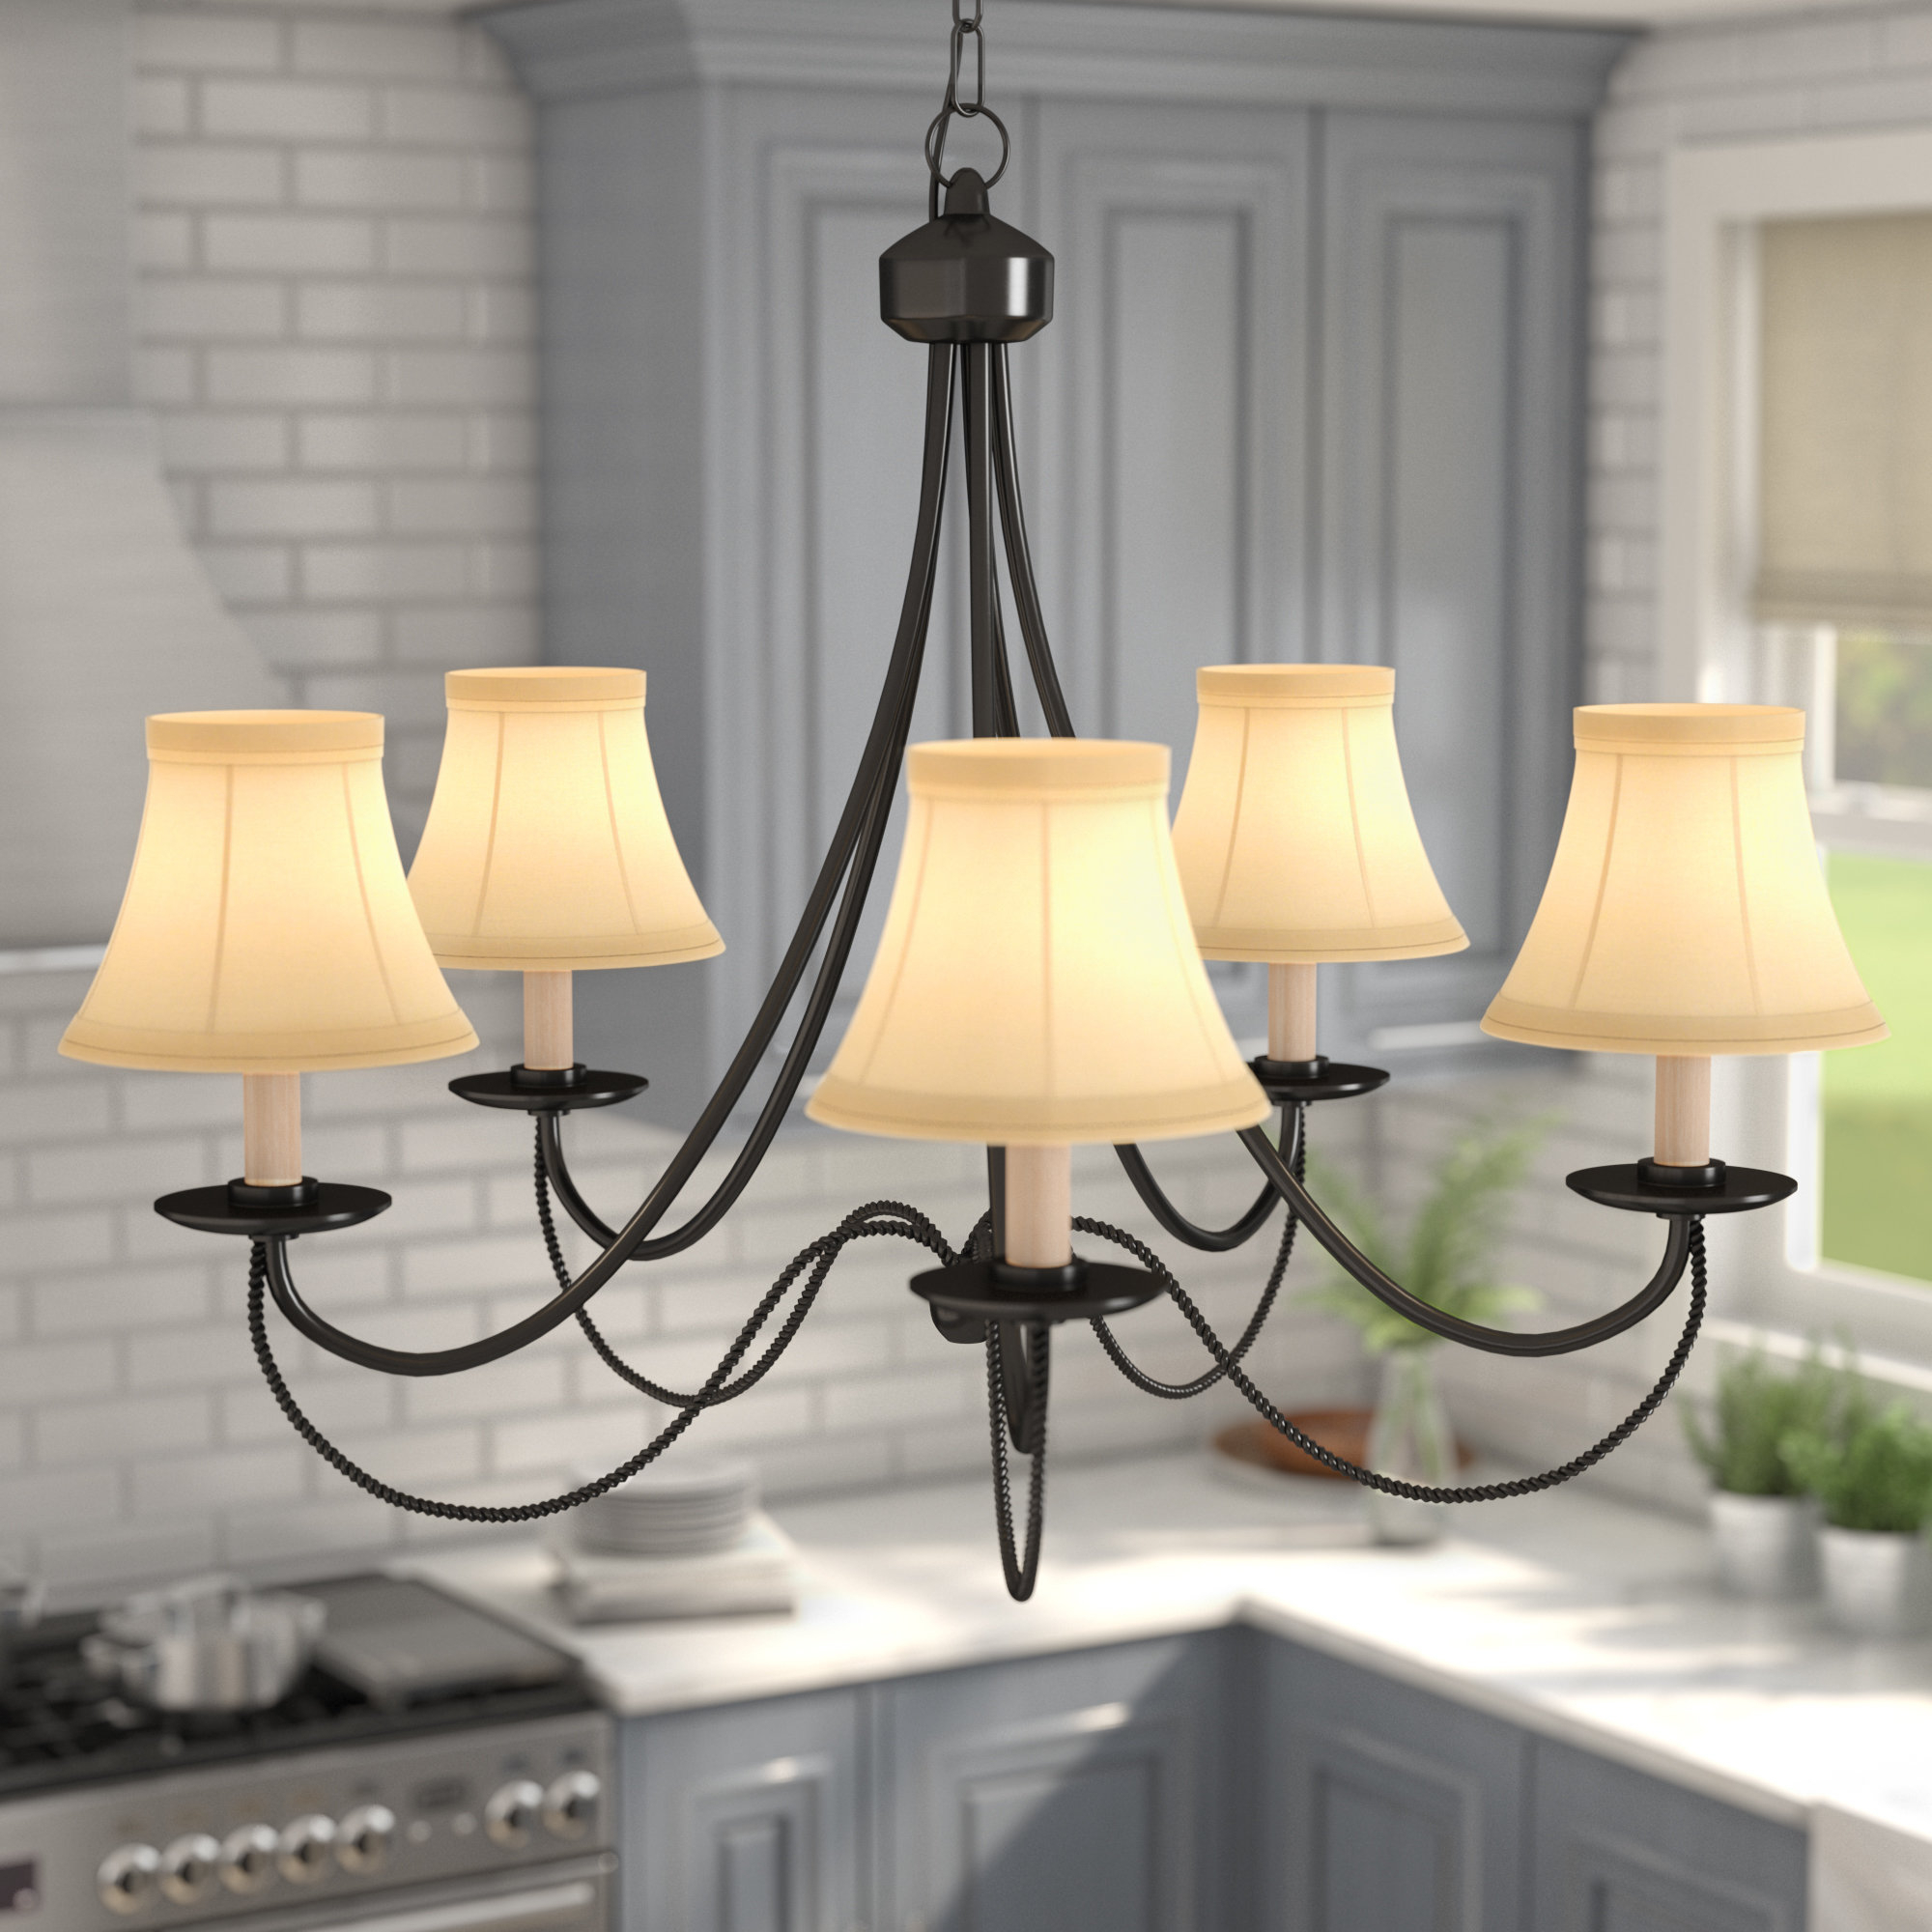 Widely Used Venilale 5 Light Shaded Chandelier Within Suki 5 Light Shaded Chandeliers (View 20 of 20)